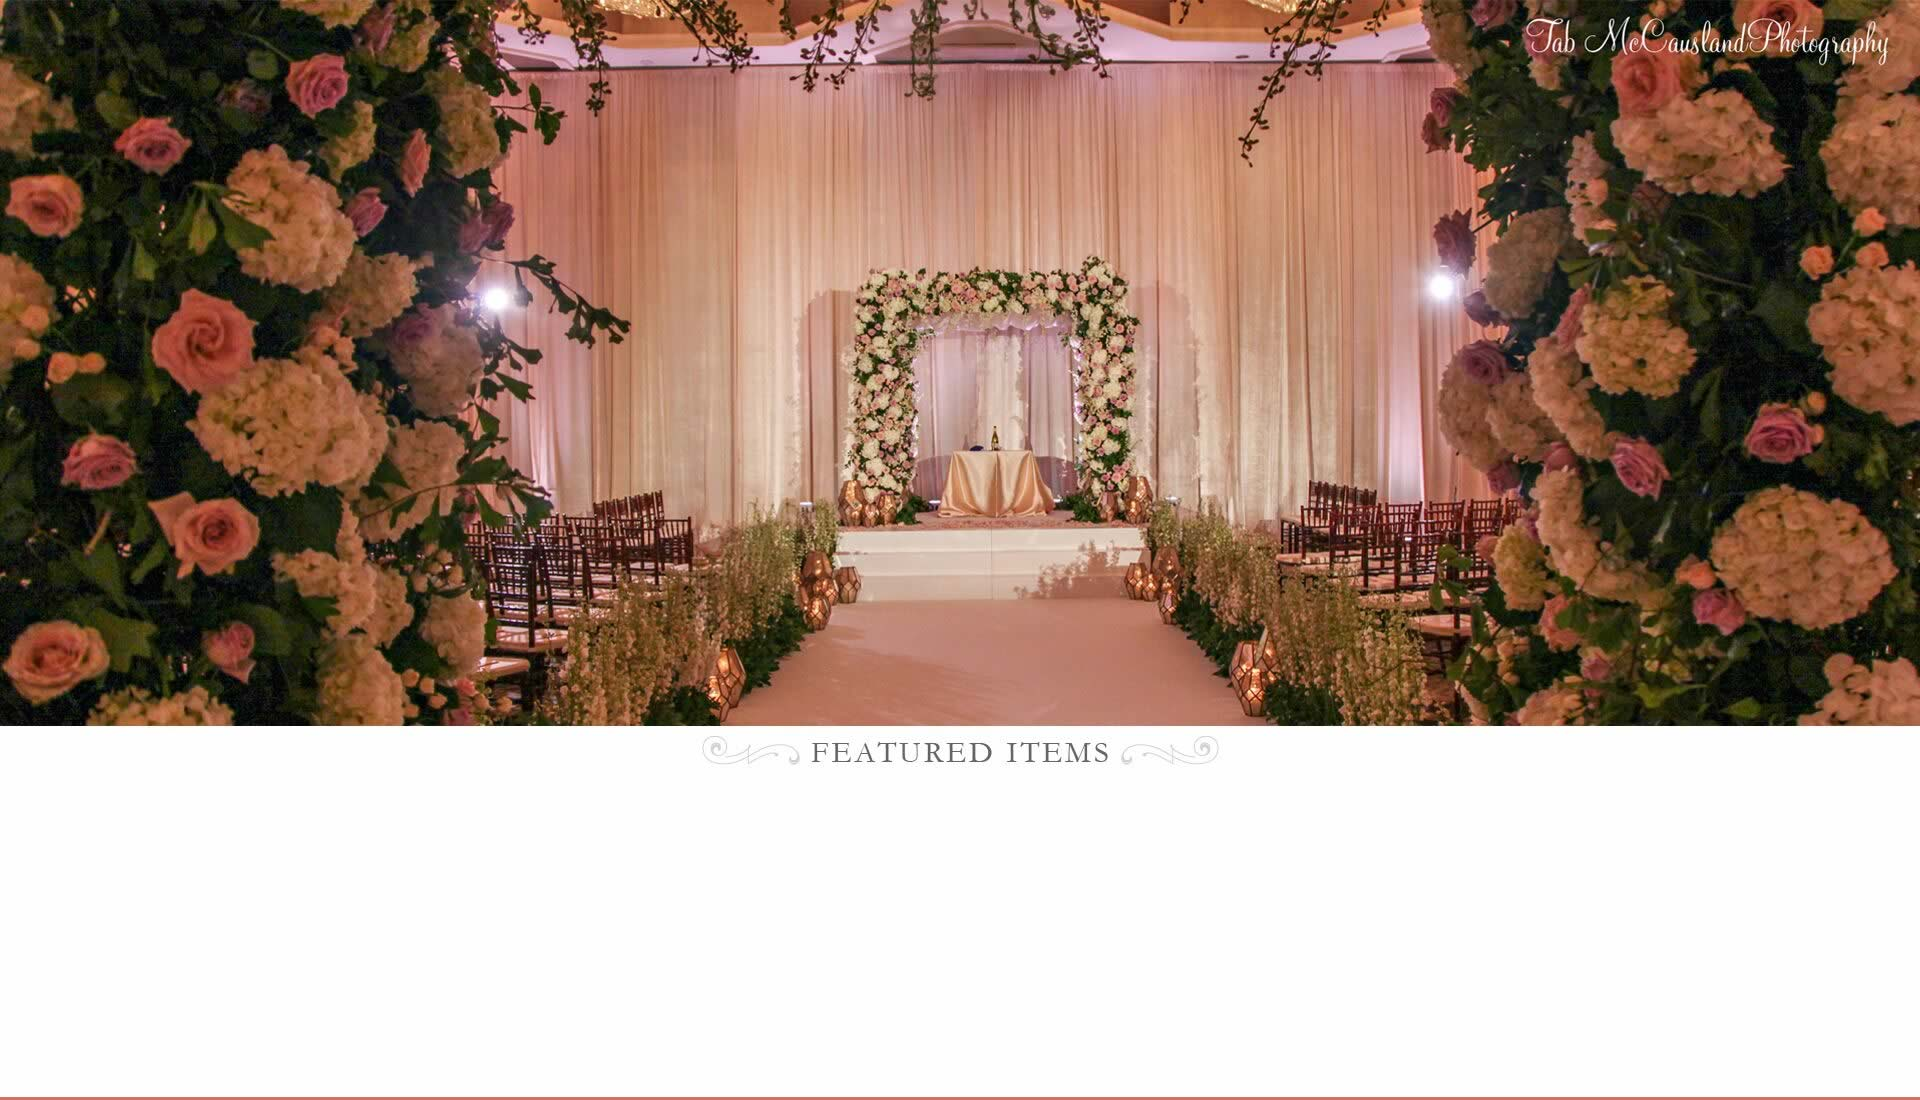 Wedding party and event rentals available orlando fl wedding ceremony rentals a chair affair rentals junglespirit Images